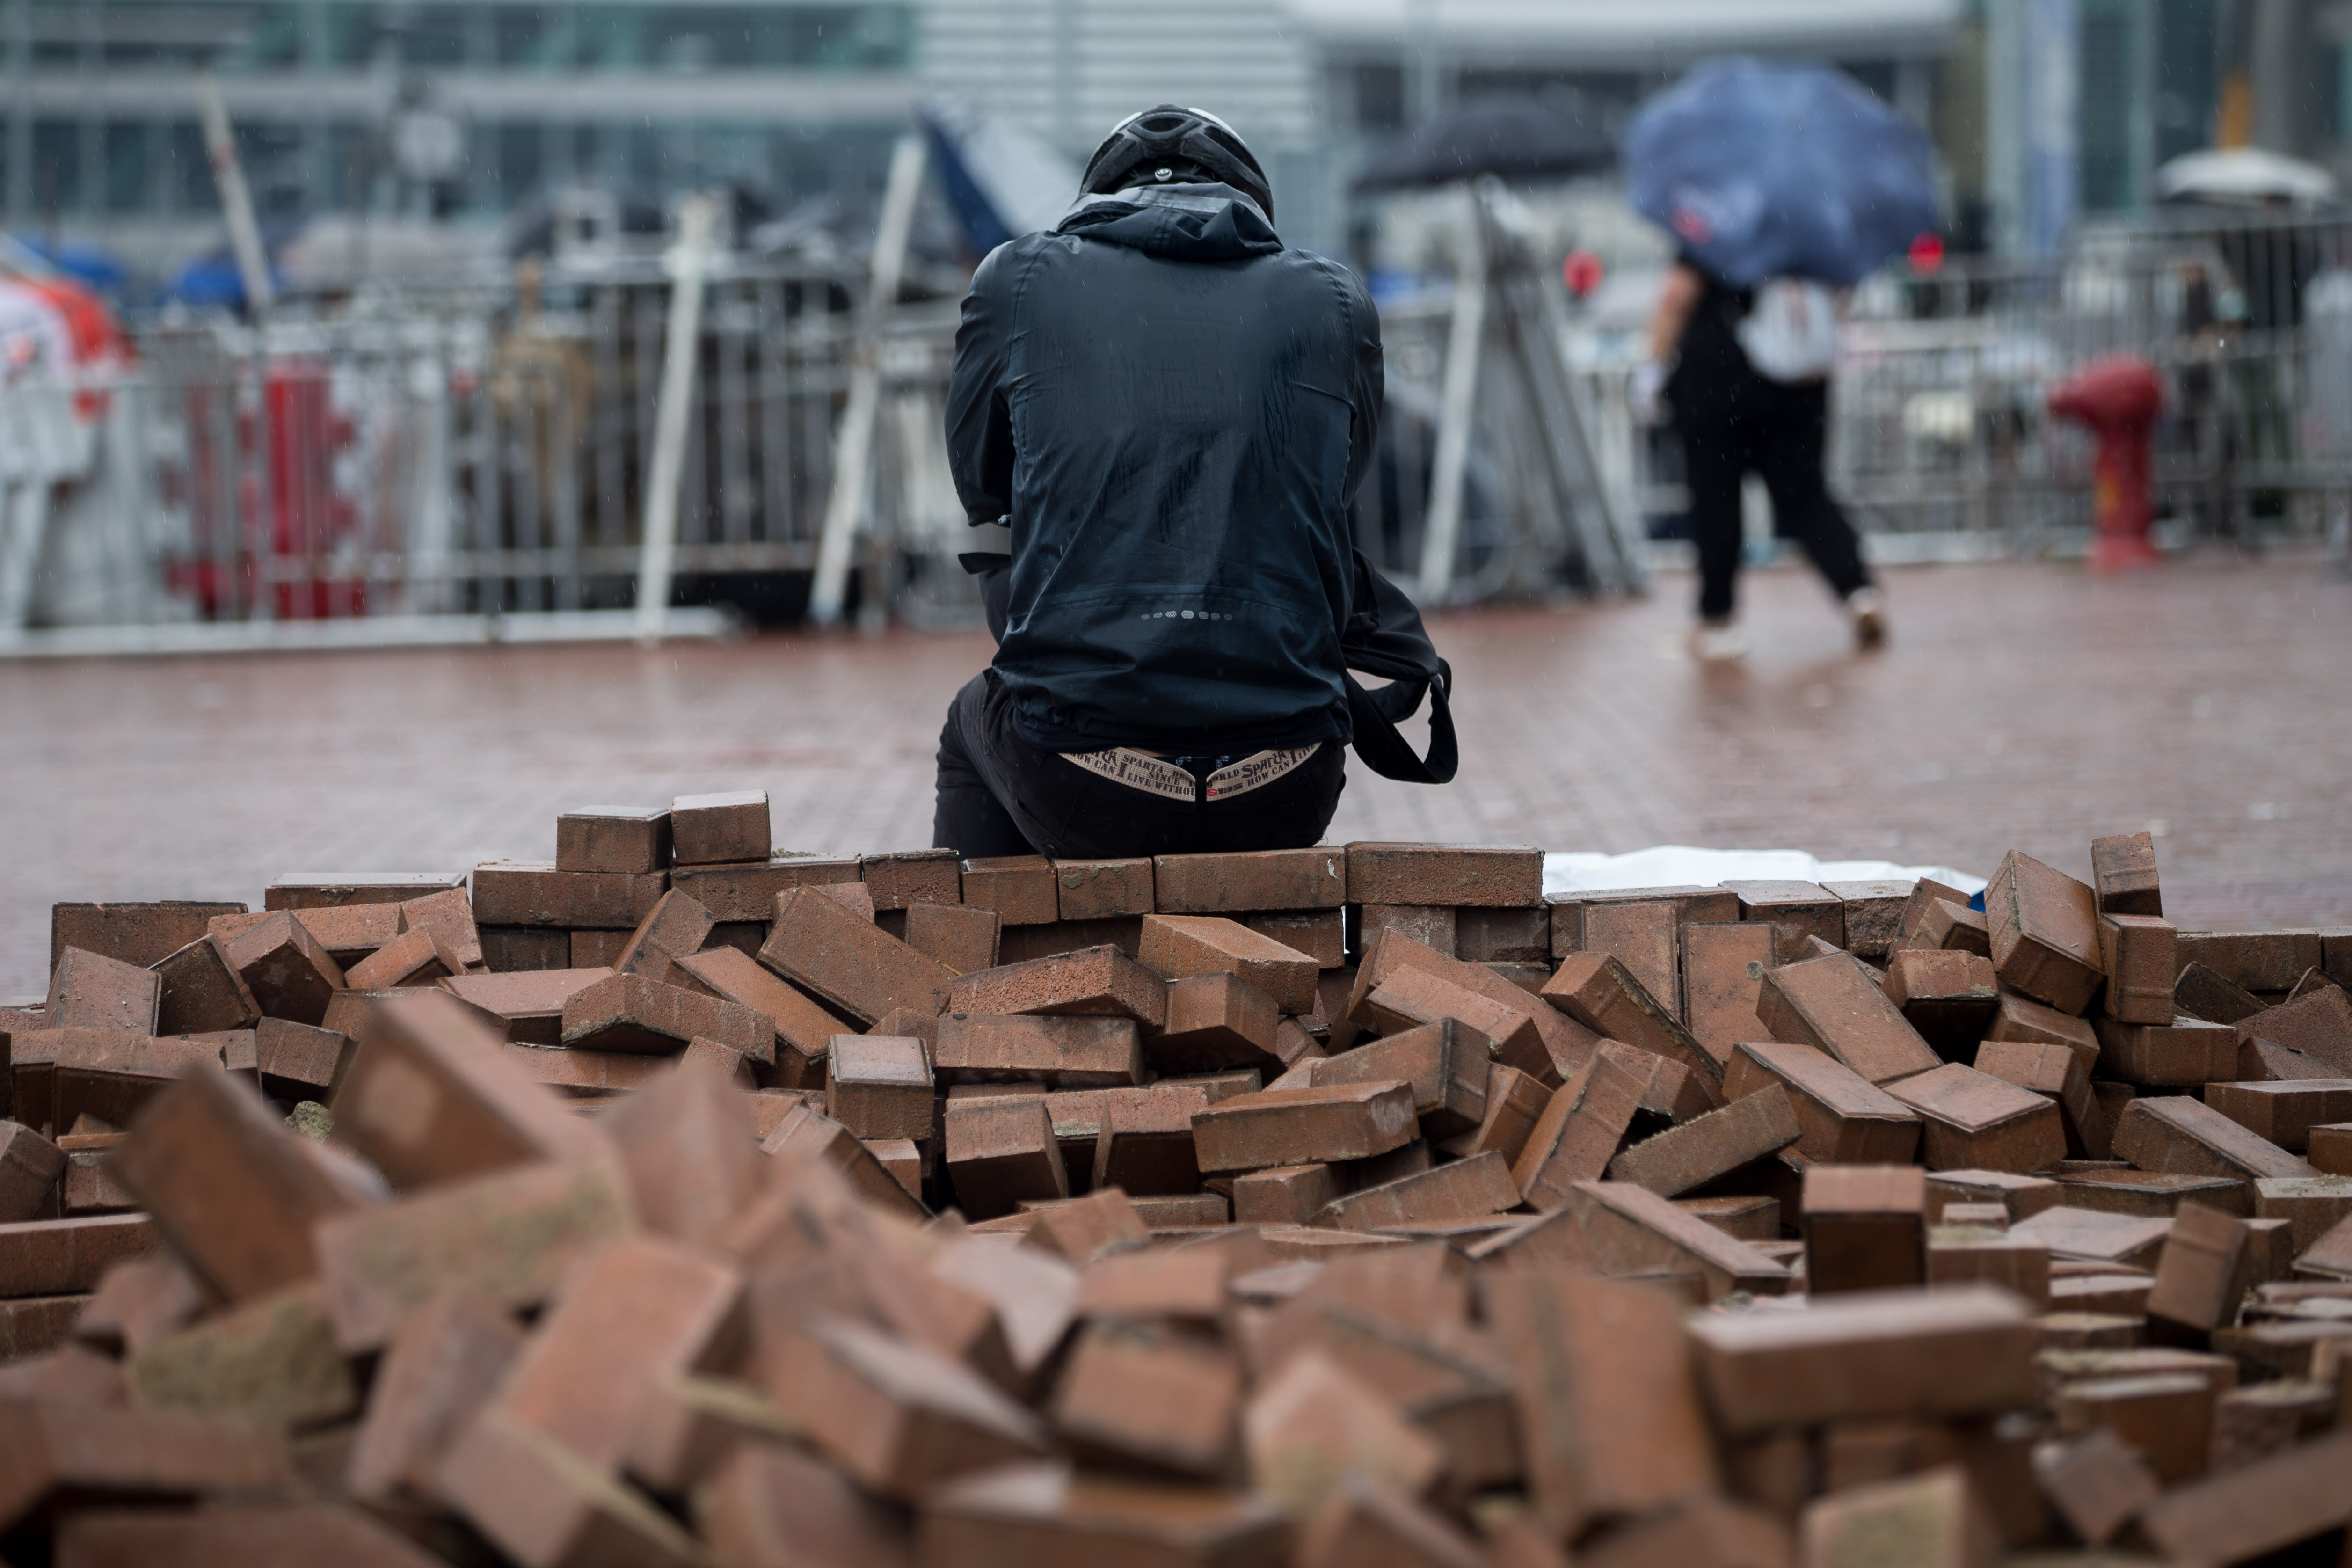 A man rests on a pile of bricks gathered by protesters.